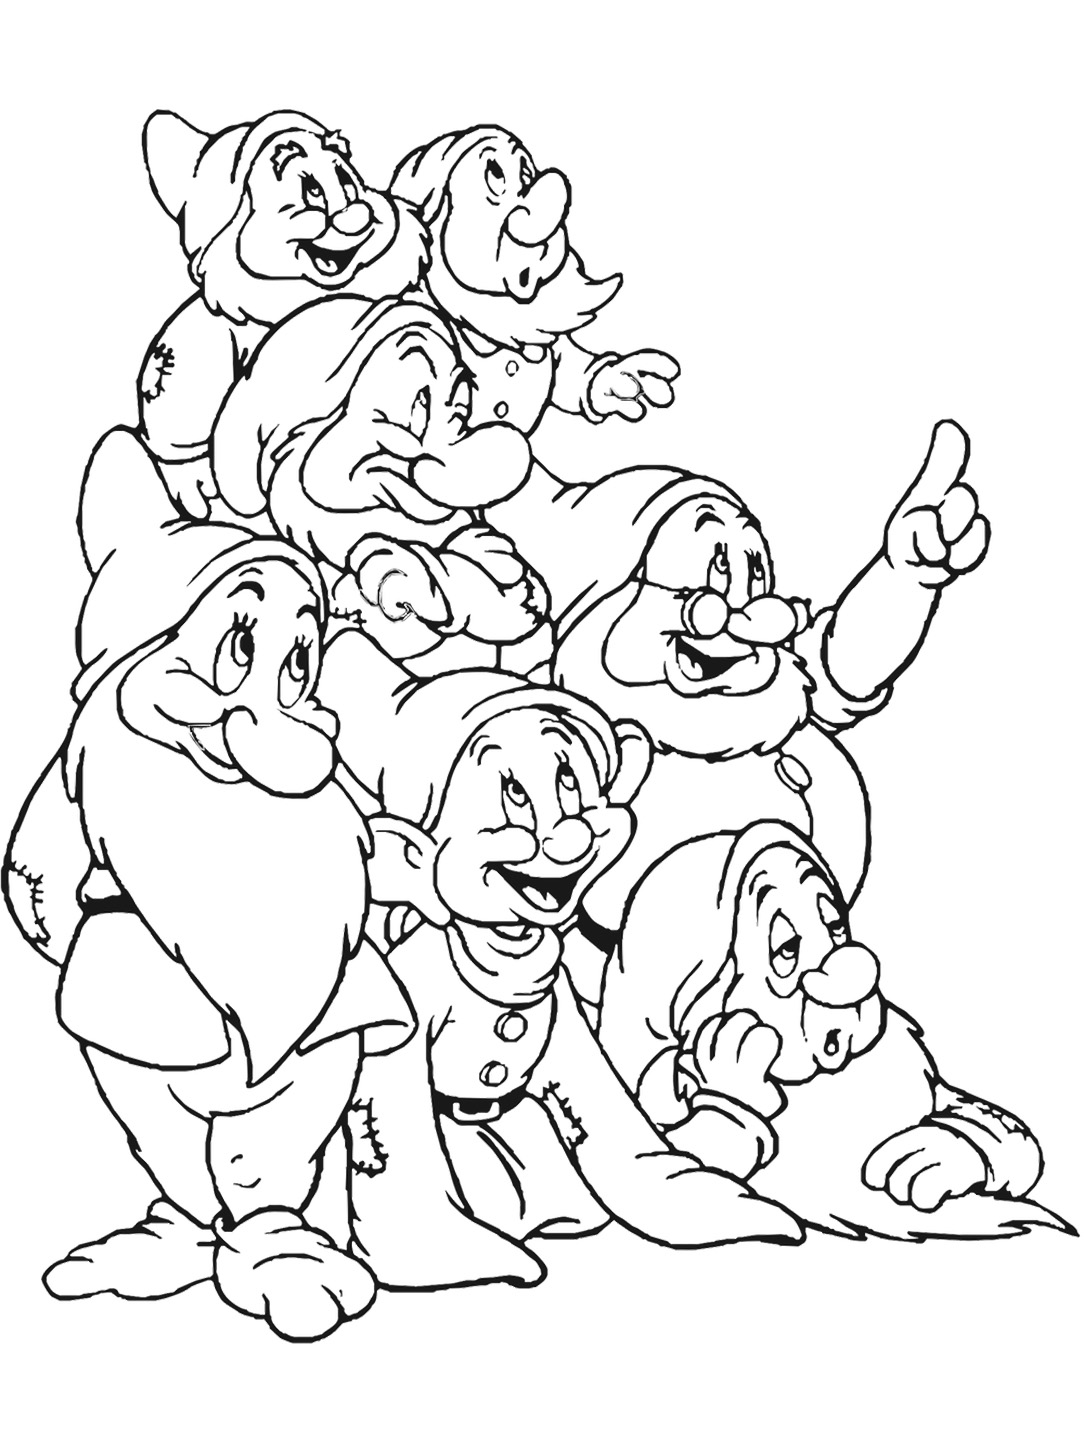 Snow White coloring page to print and color for free